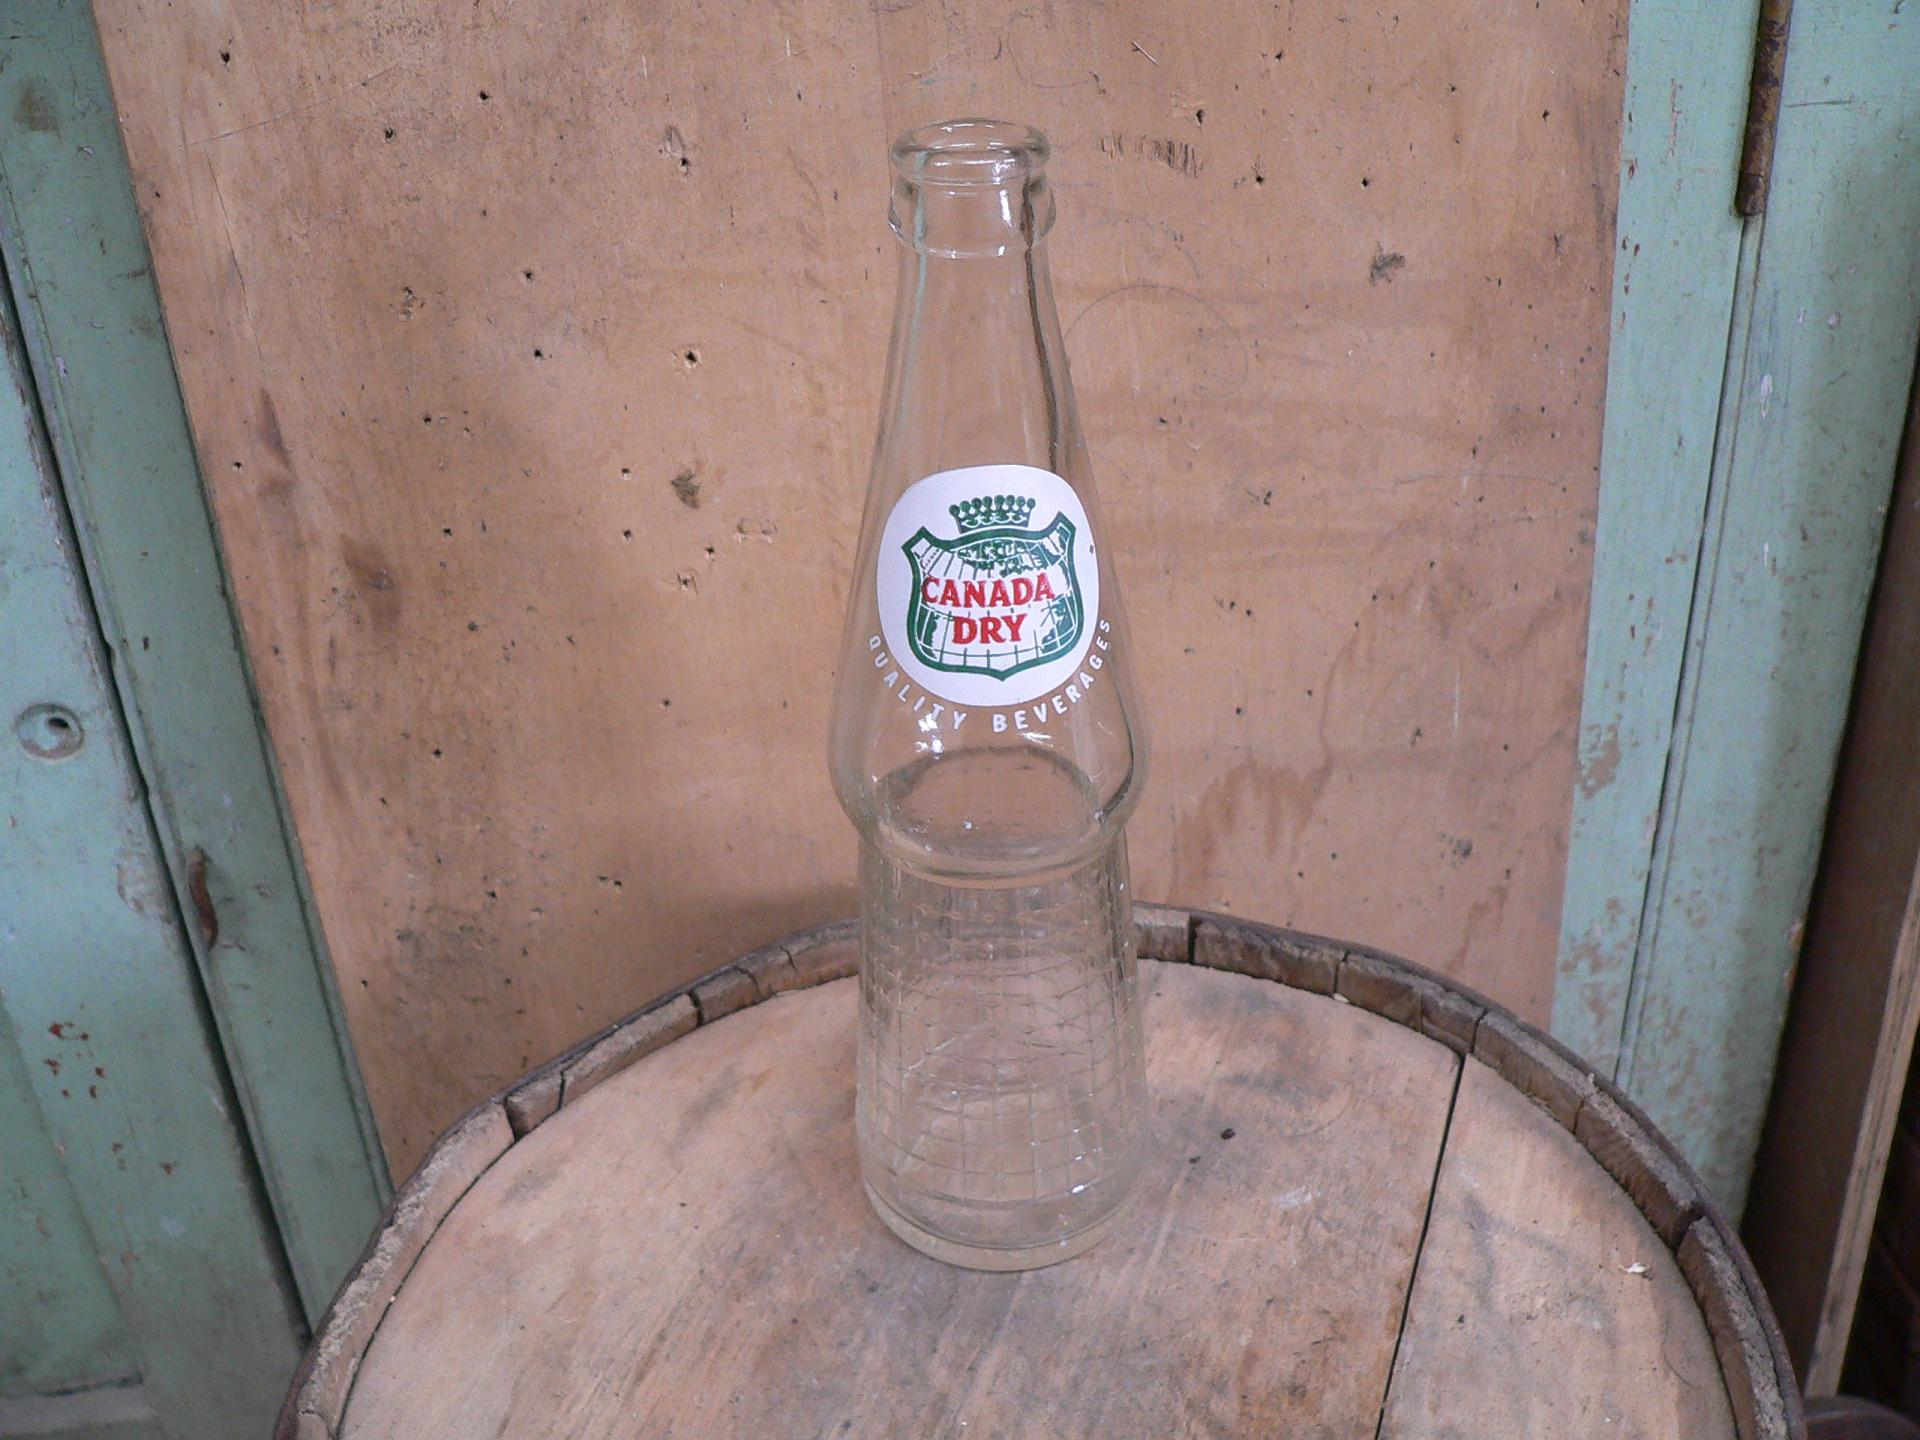 Bouteille antique canada dry # 5318.6